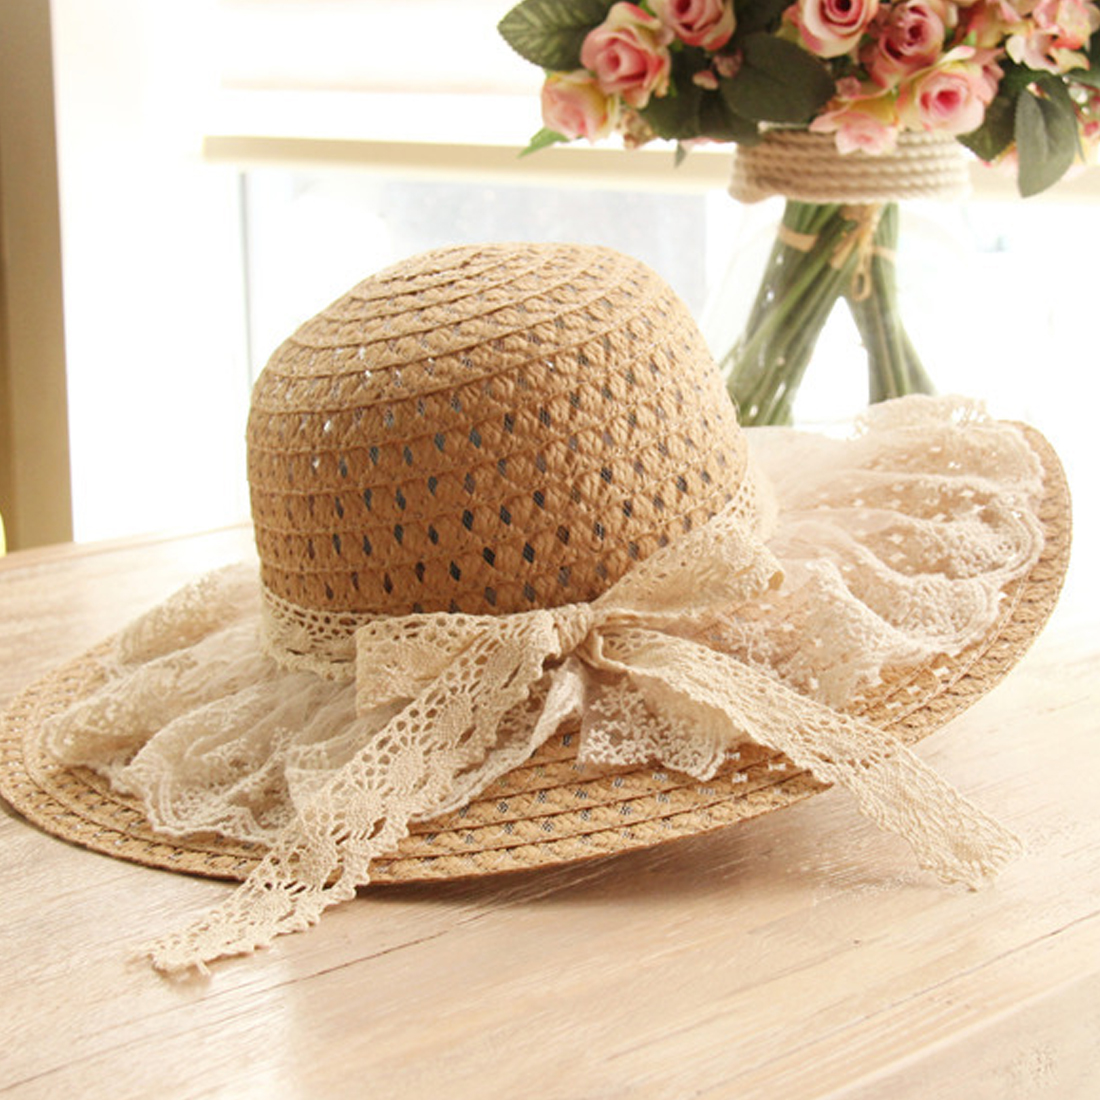 Lace Sun Hats For Women Wide Brim Straw Beach Side Cap Floppy Female Straw Hat Lace Solid Fringe Straw Hat Summer Hat Chapeu wide brim straw hat